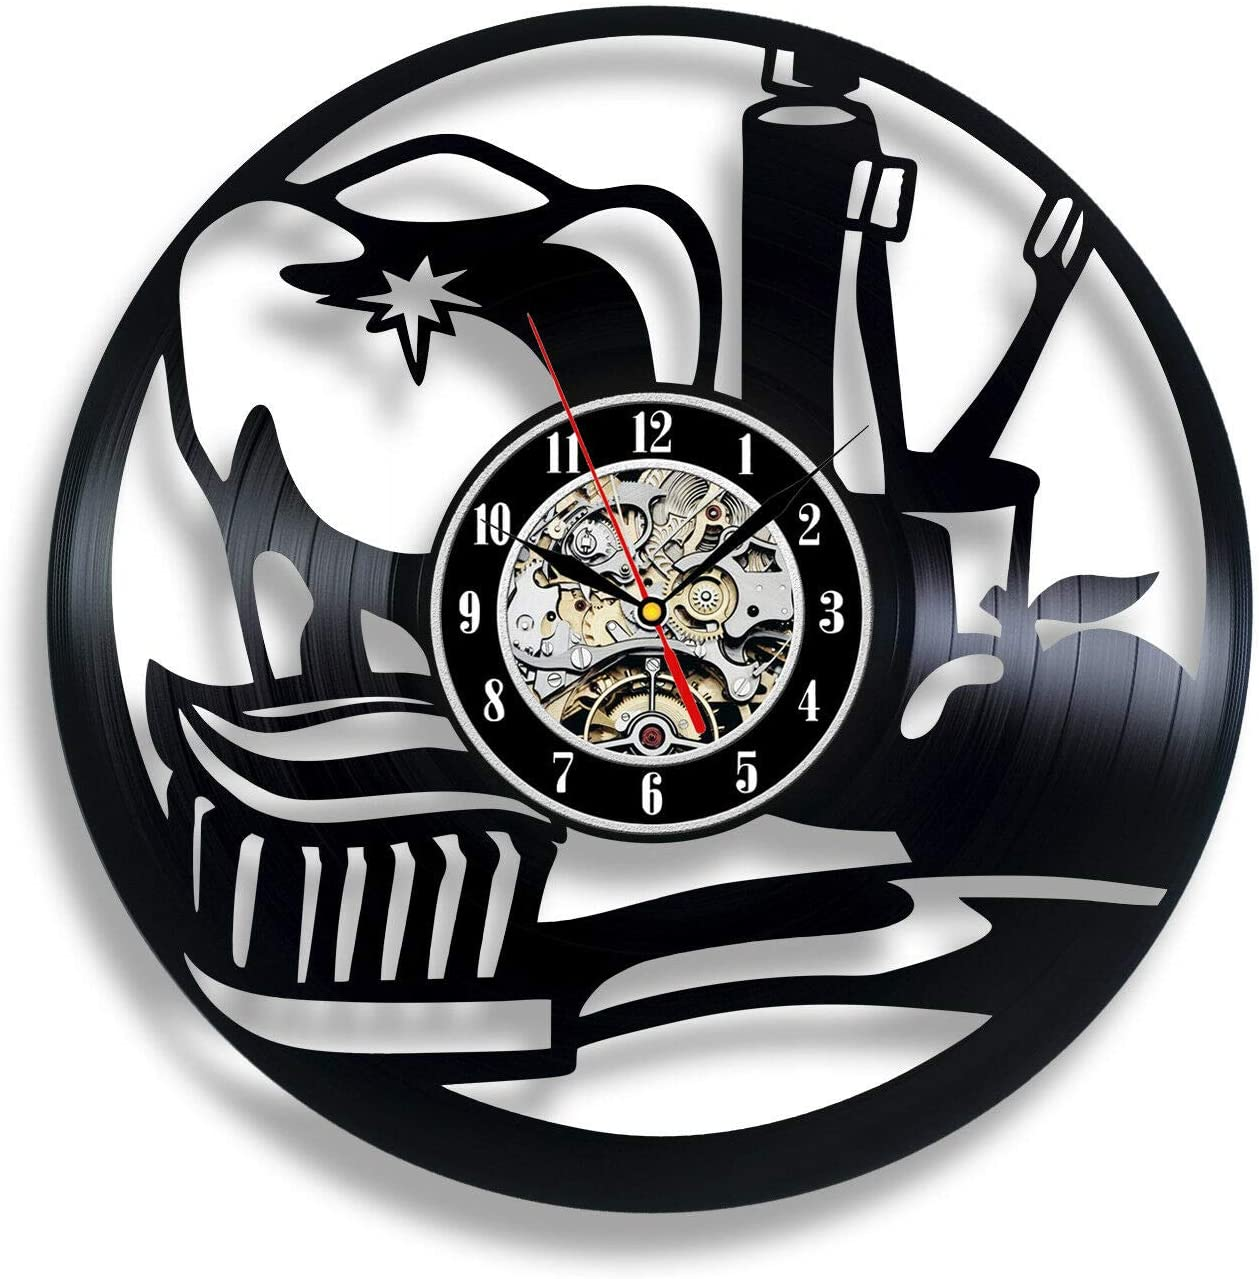 Dental Clinic Wall Clock Stomatology Dentist 12 in(30cm) Black Decor Modern Decorative Vinyl Record Wall Clock This Clock is A Unique Gift to Your Friends and Family